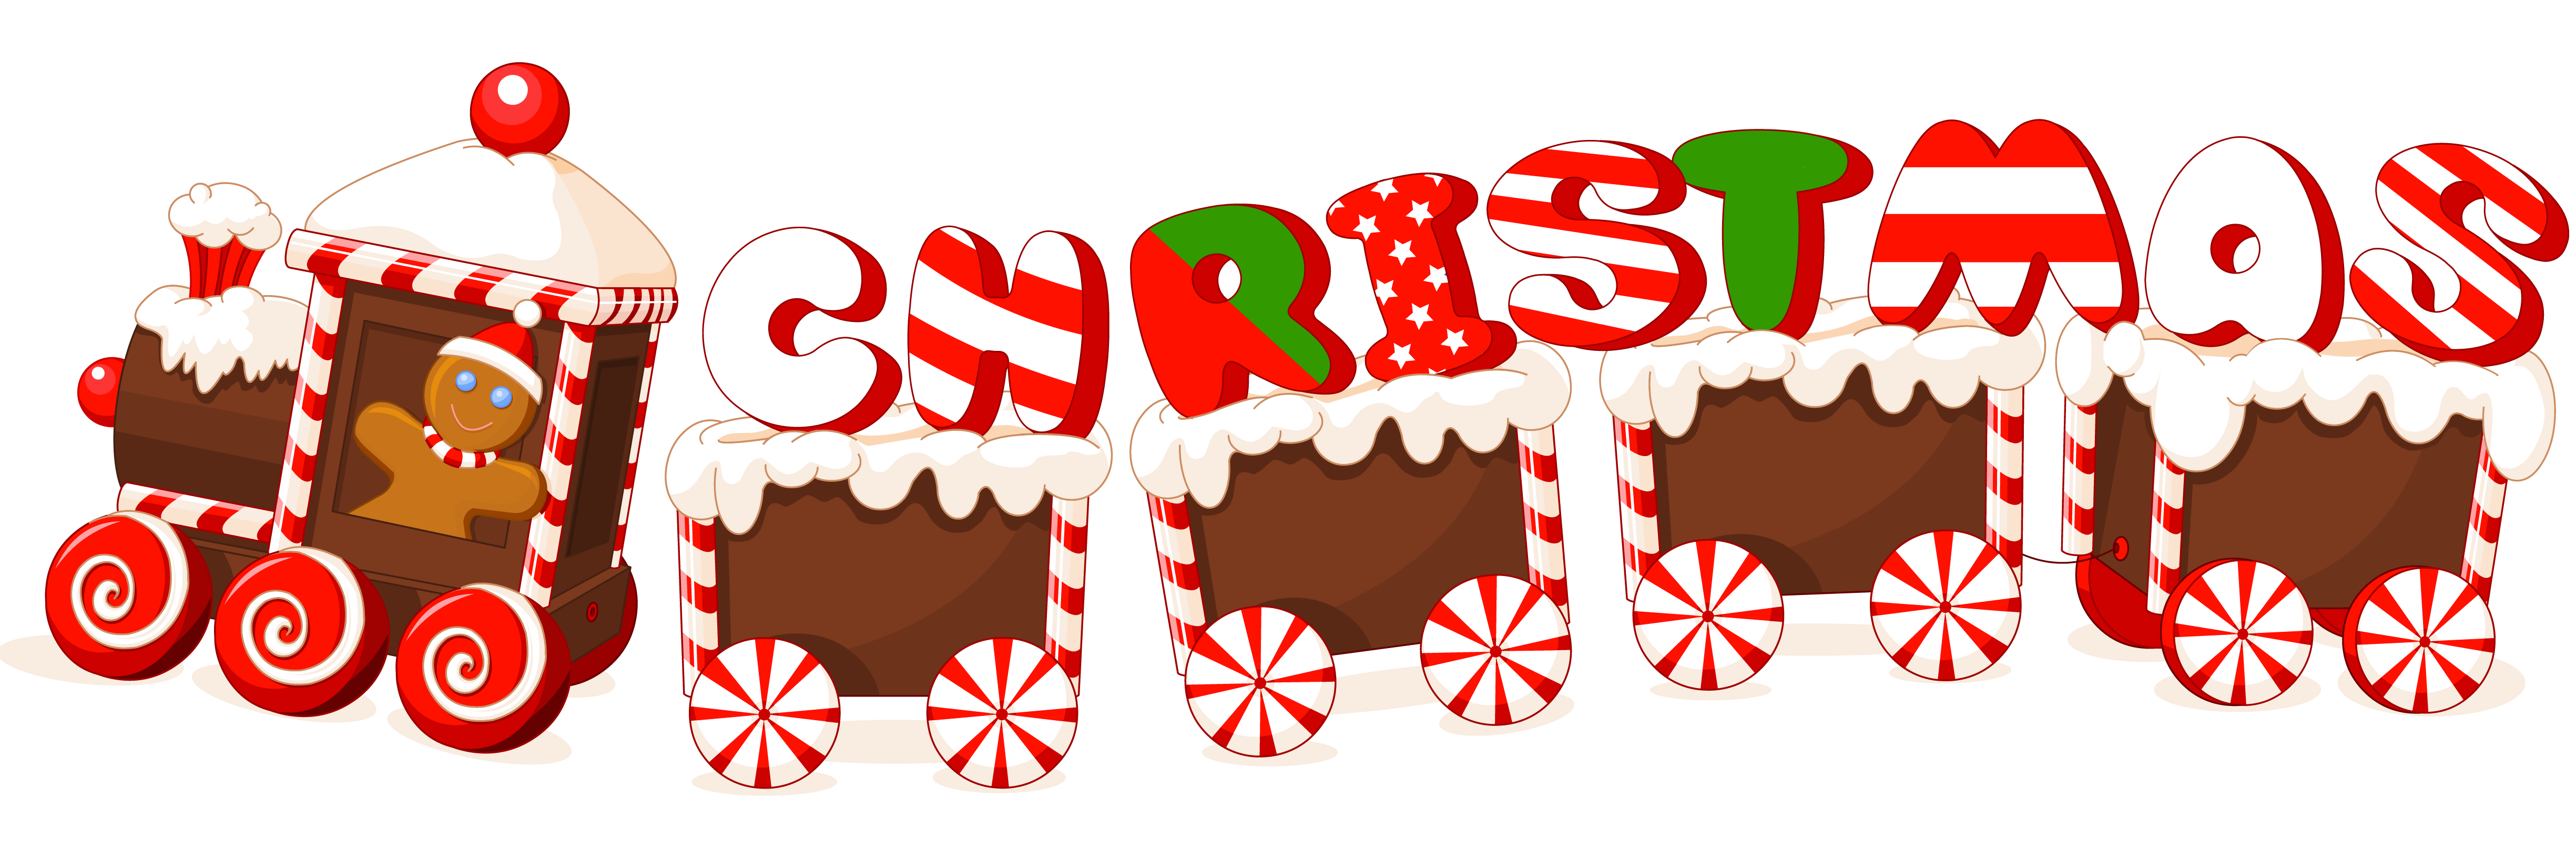 Merry candy train text. 2016 clipart christmas